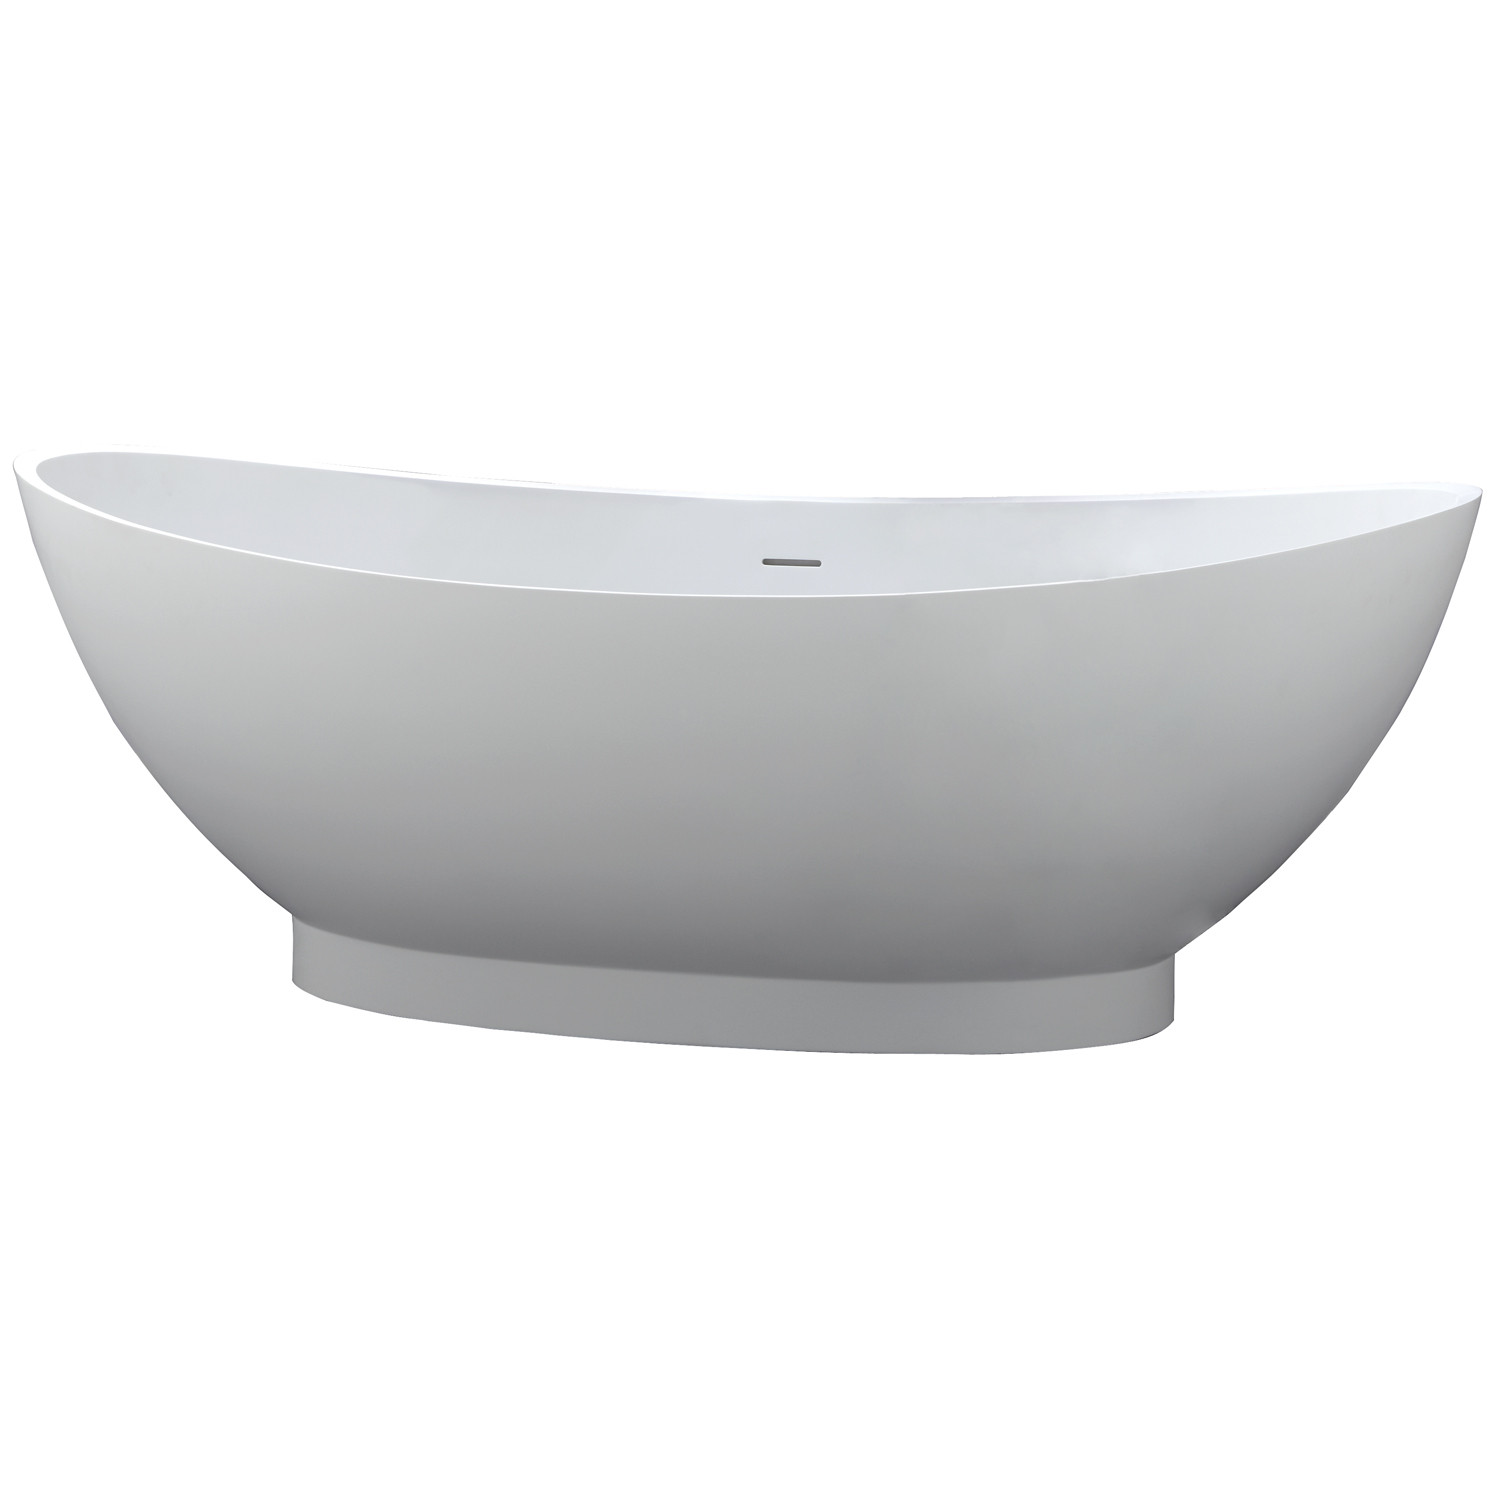 Barclay RTDSN71-WH Juliana 71 Inch Resin Double Slipper Tub In Matte White